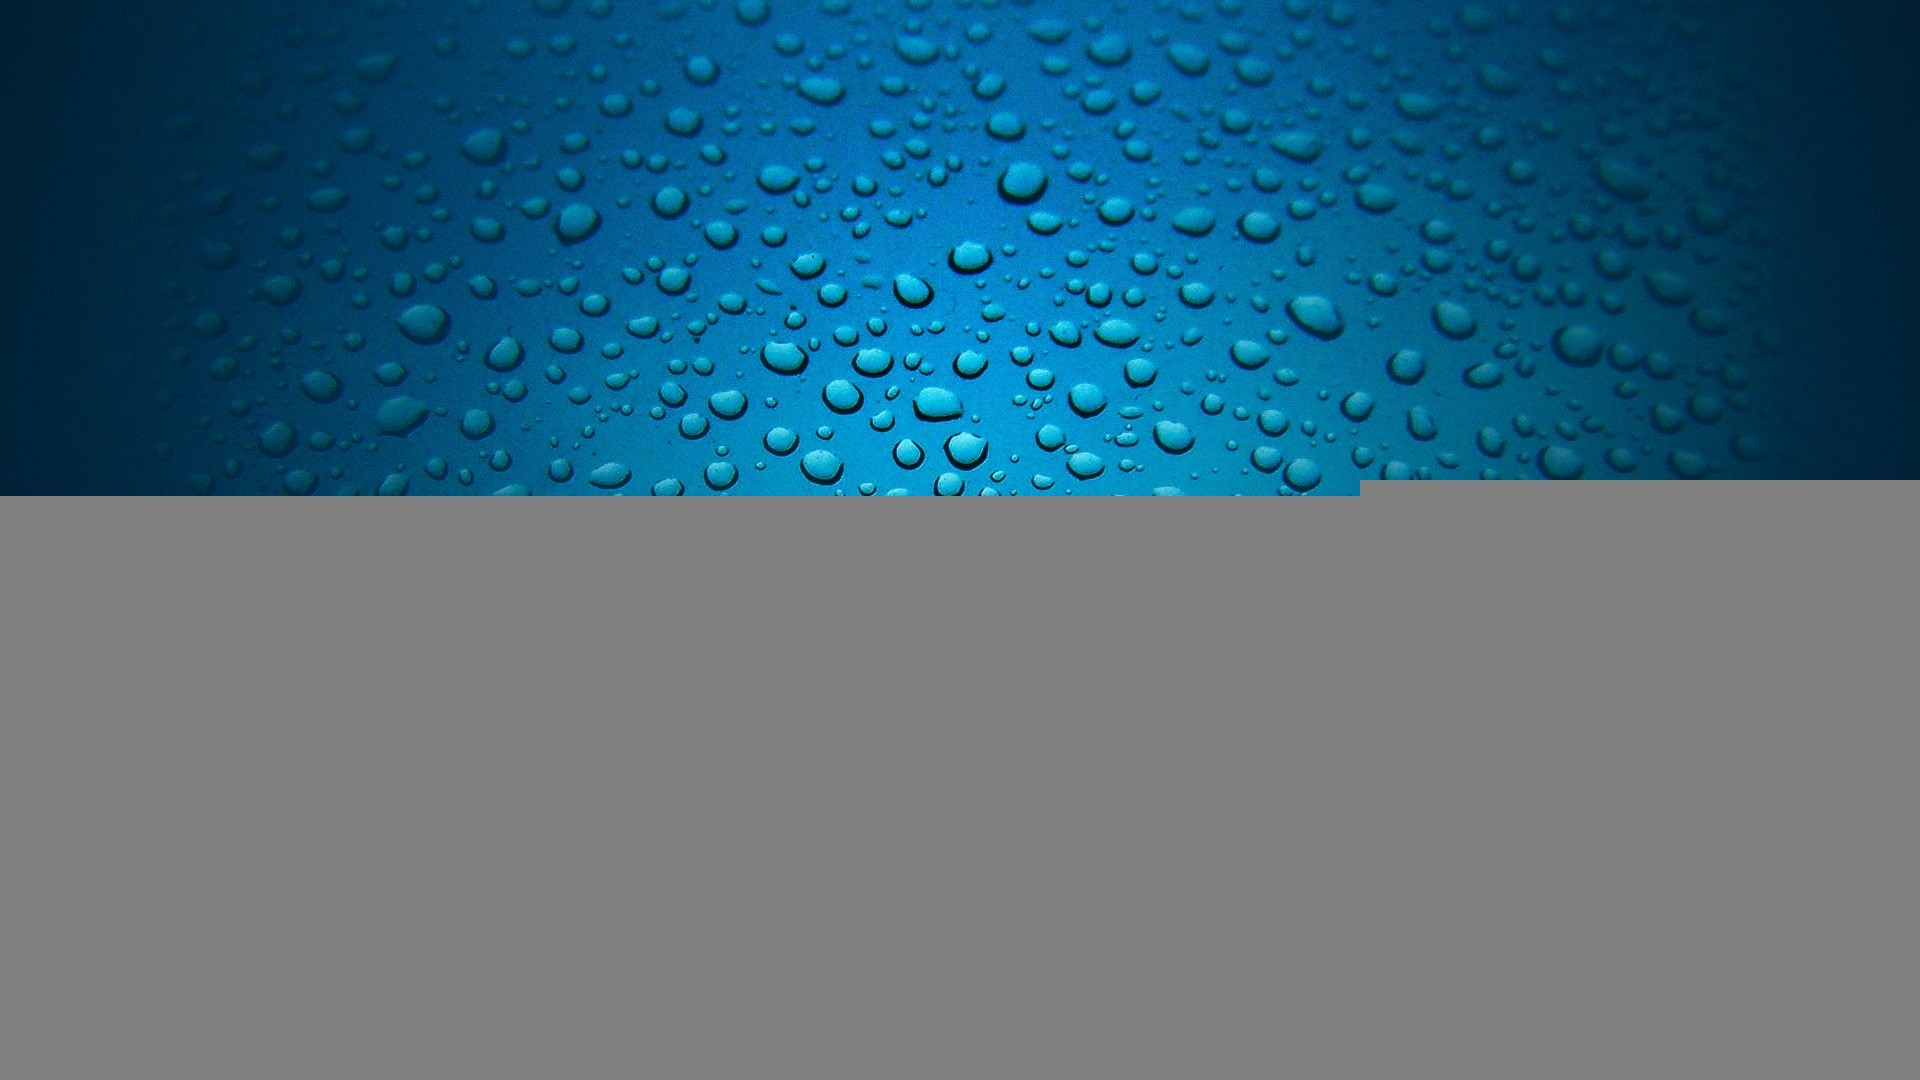 background blue water droplets wallpaper (62+ images)